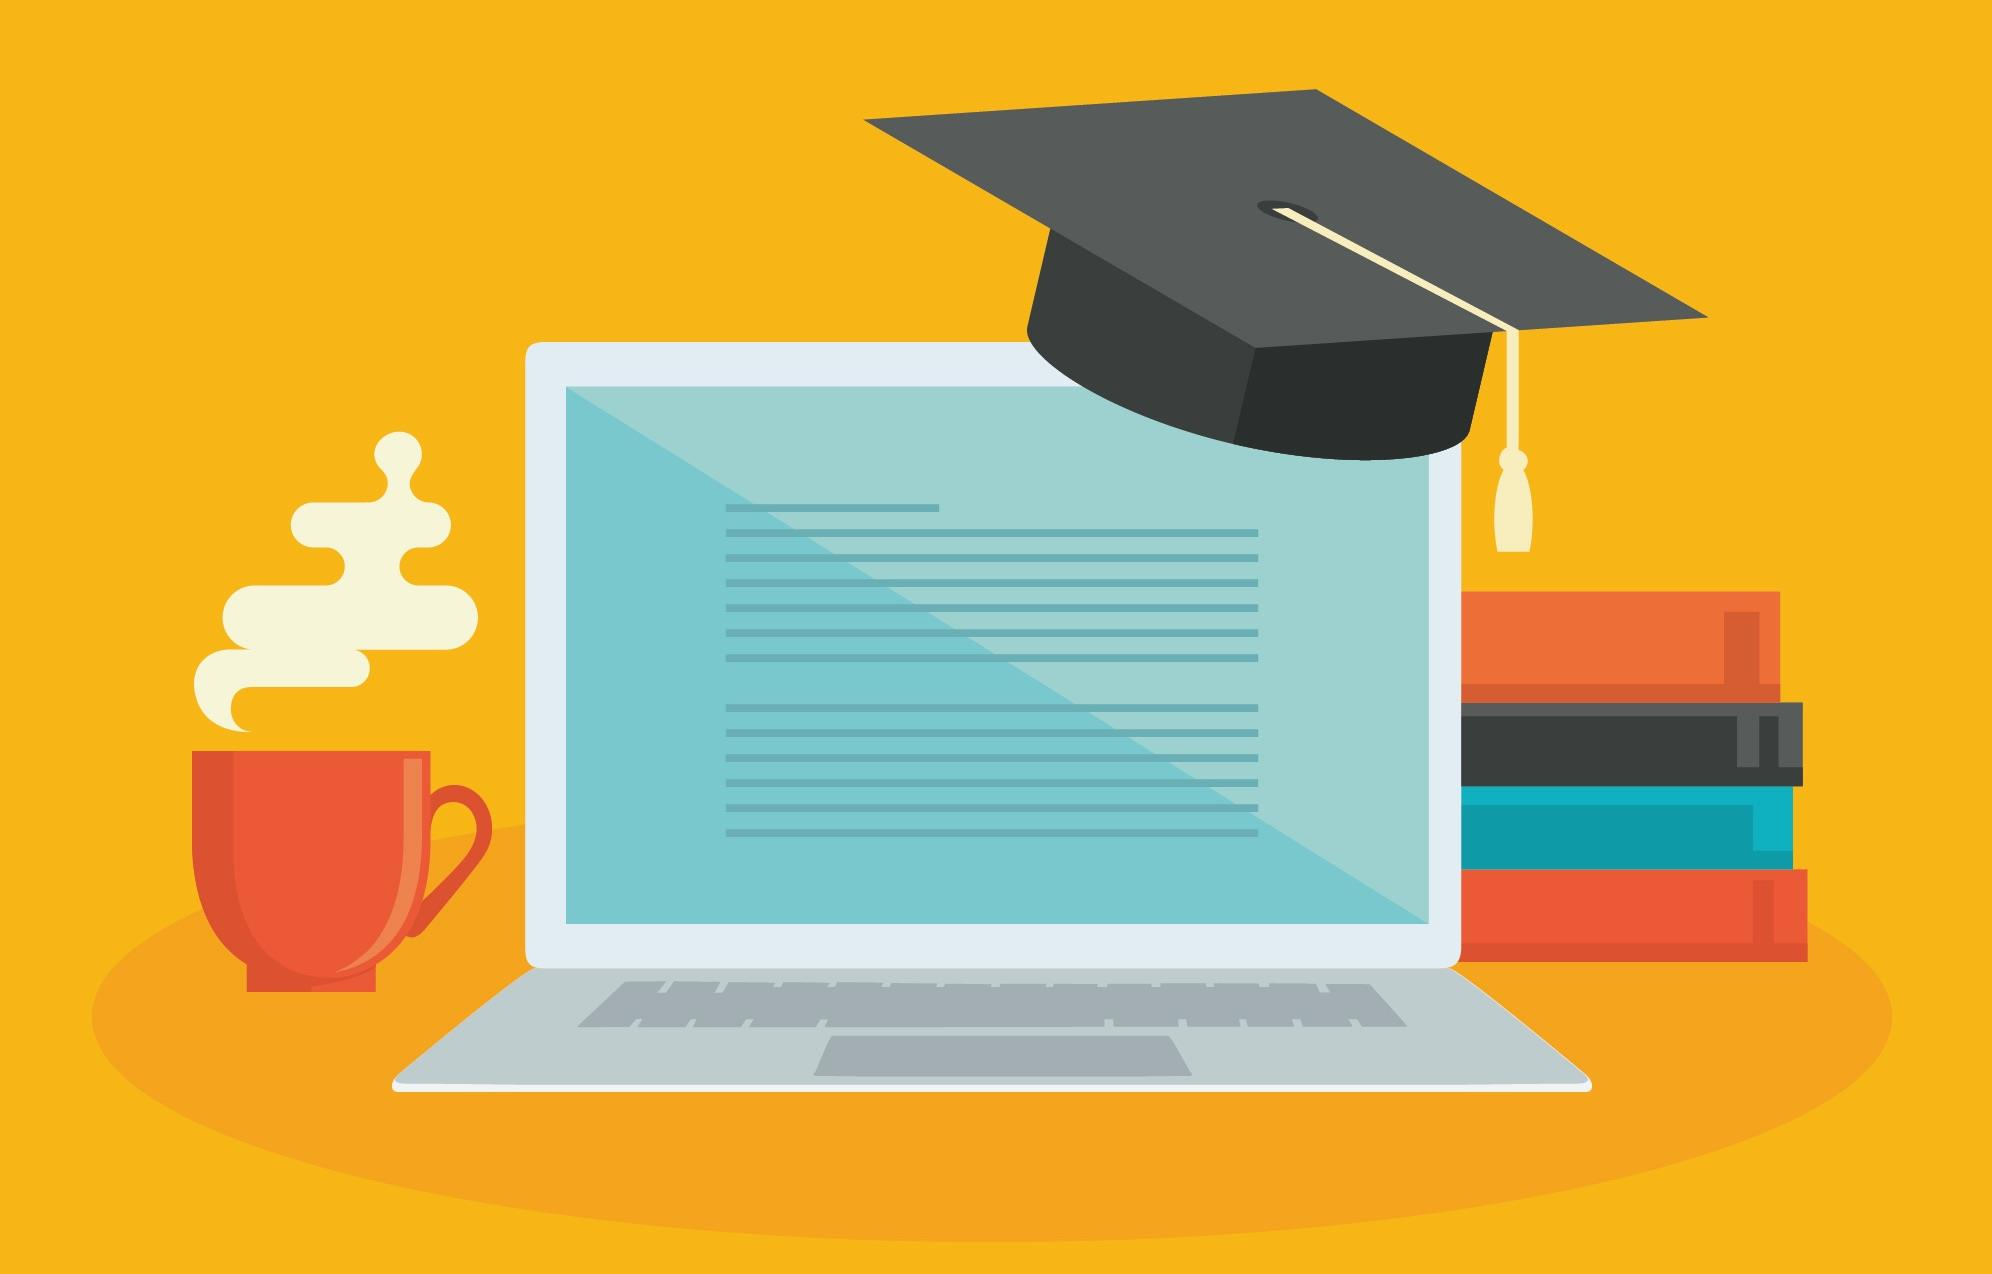 Here Are Five Free Online Courses You Can Take To Upskill News